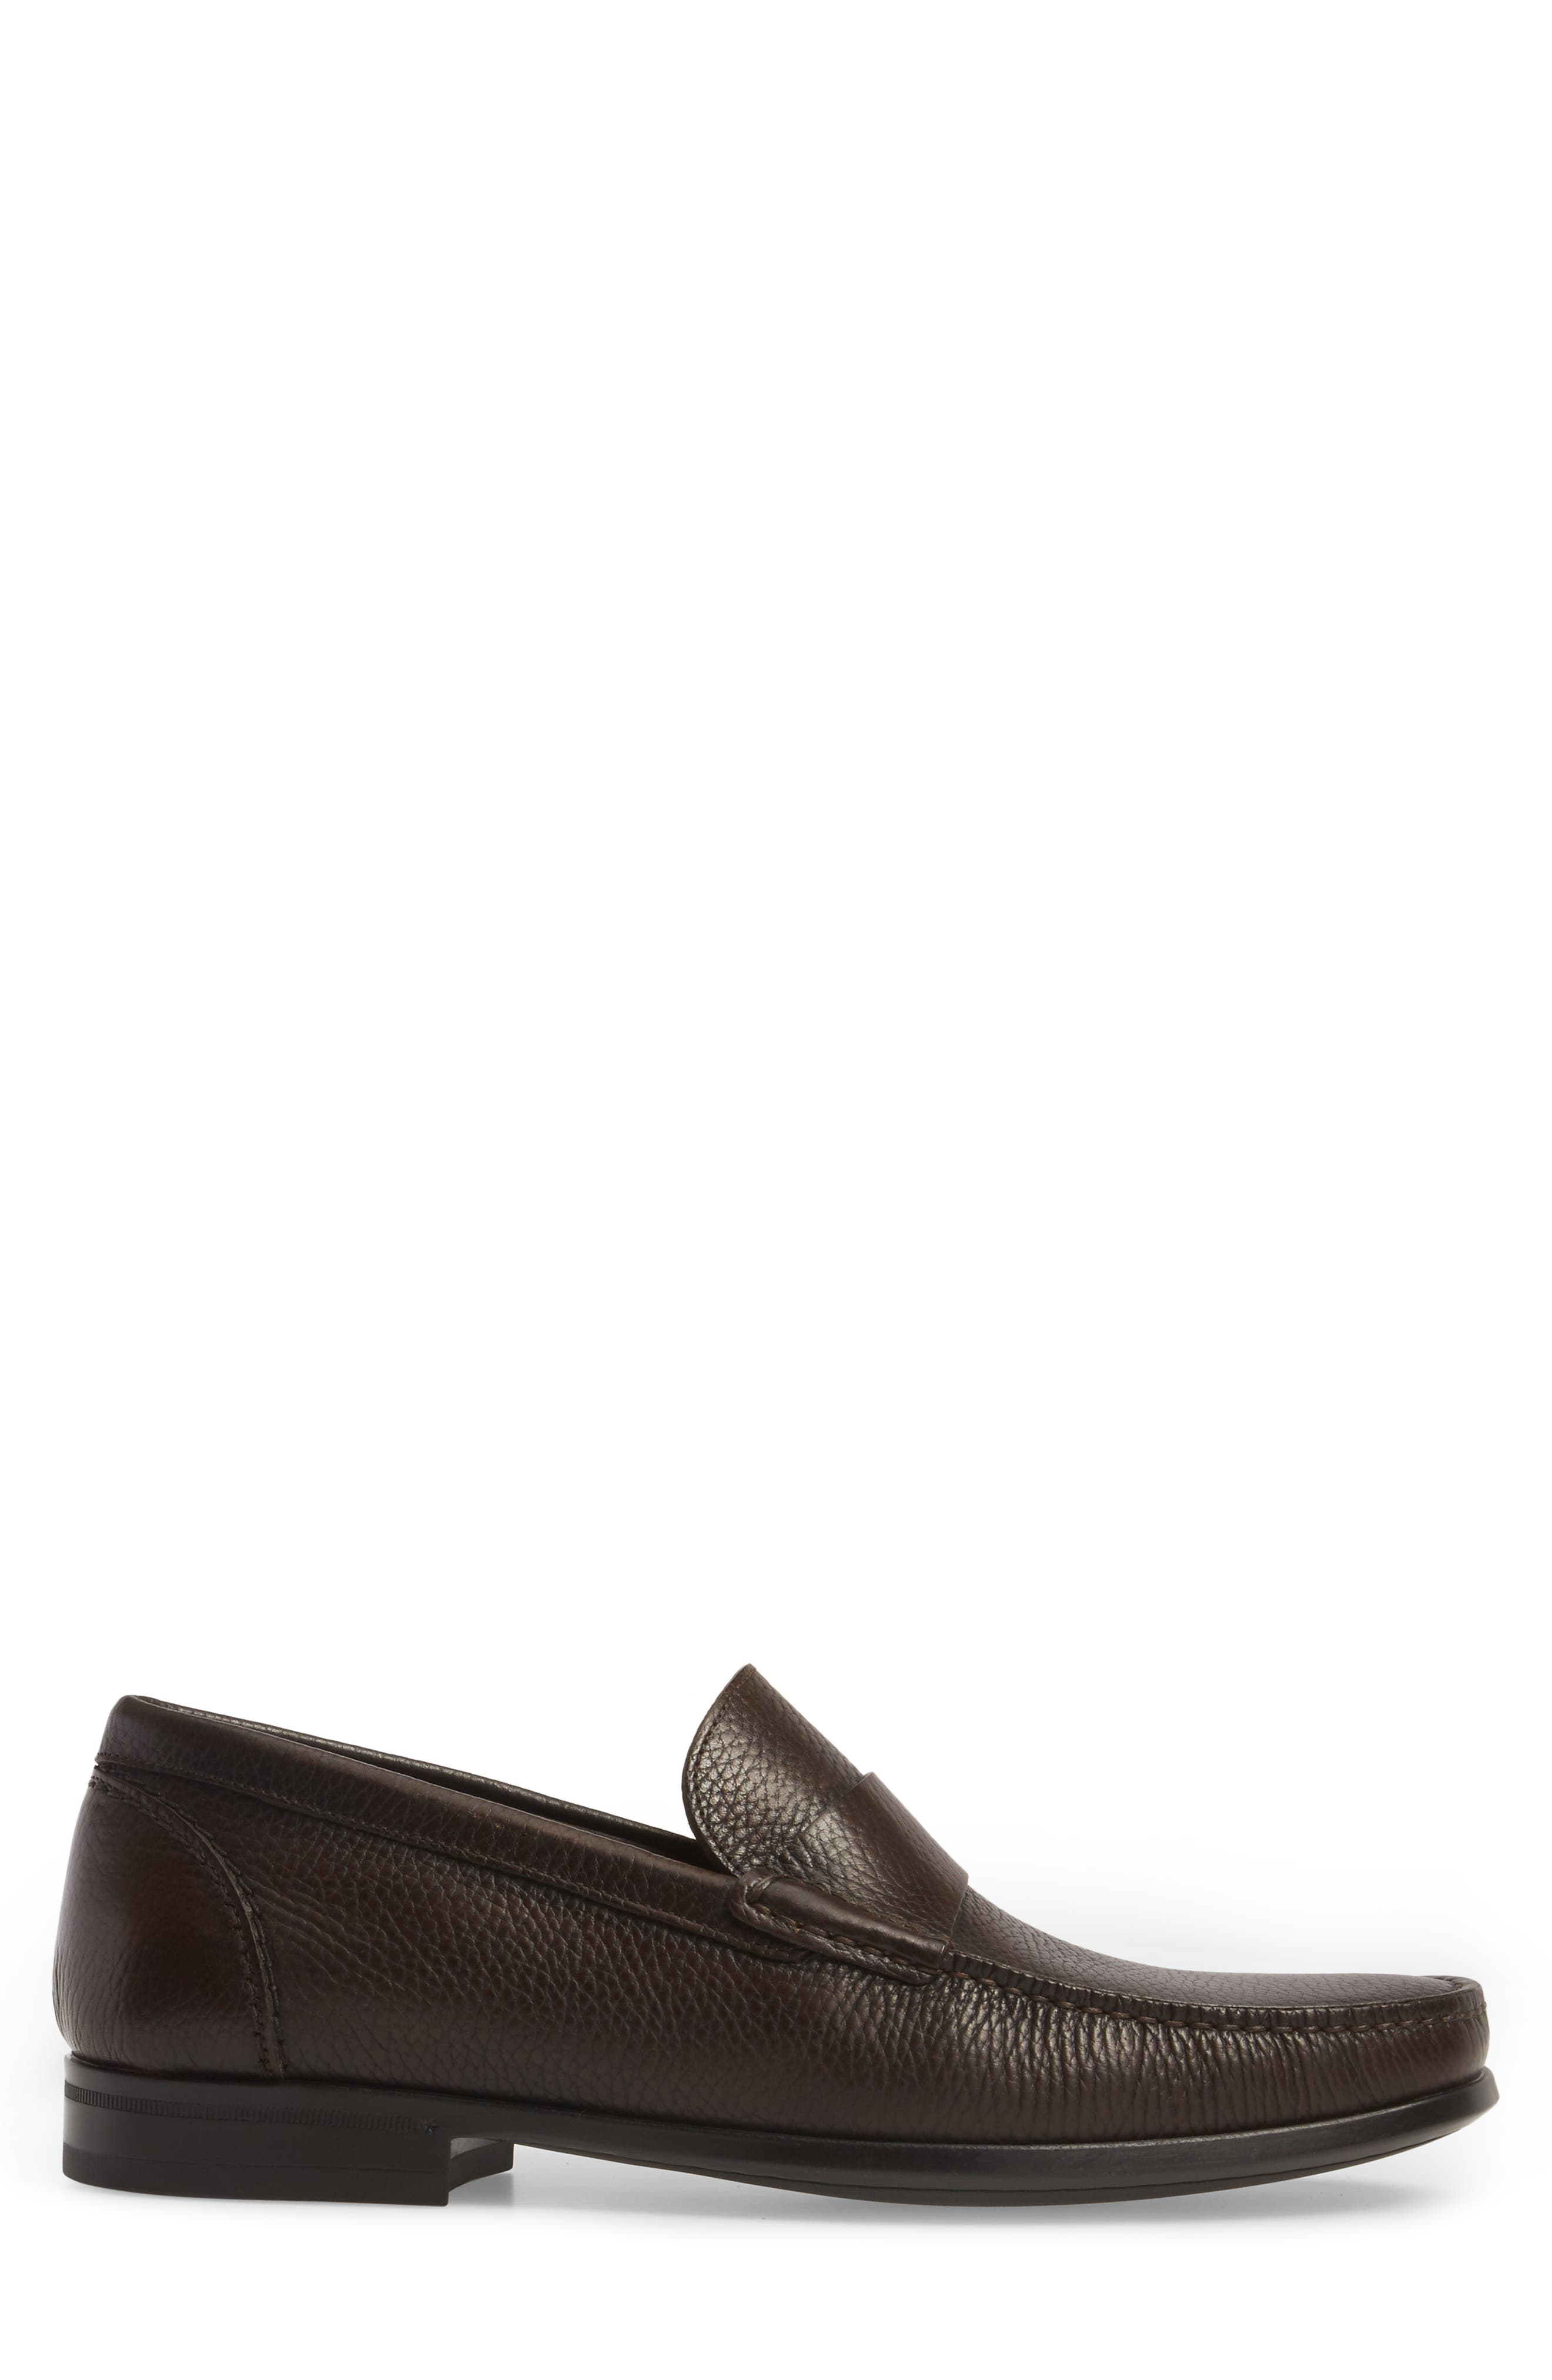 Savona Loafer,                             Alternate thumbnail 3, color,